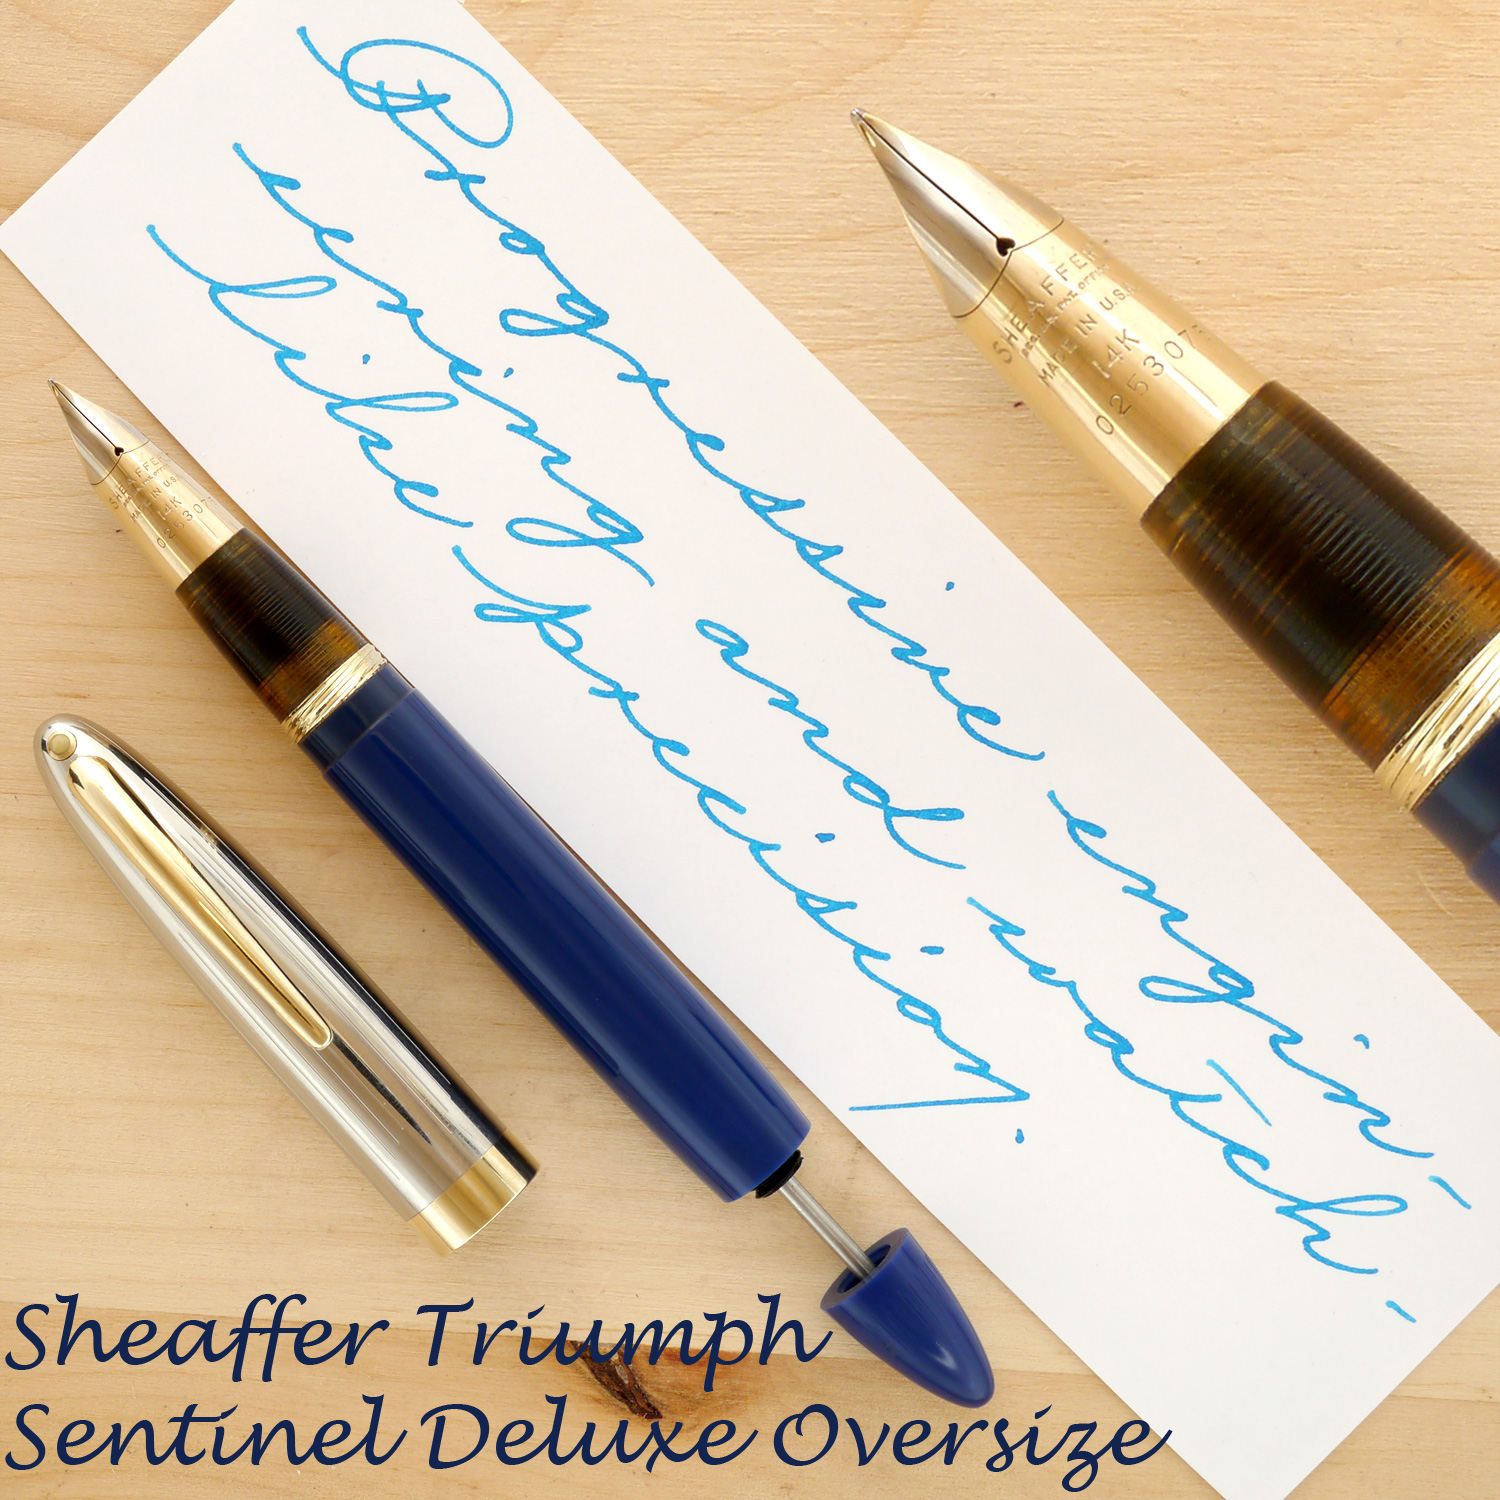 Sheaffer Triumph Vac Sentinel Deluxe Oversize, Blue, B, uncapped with the plunger partially extended